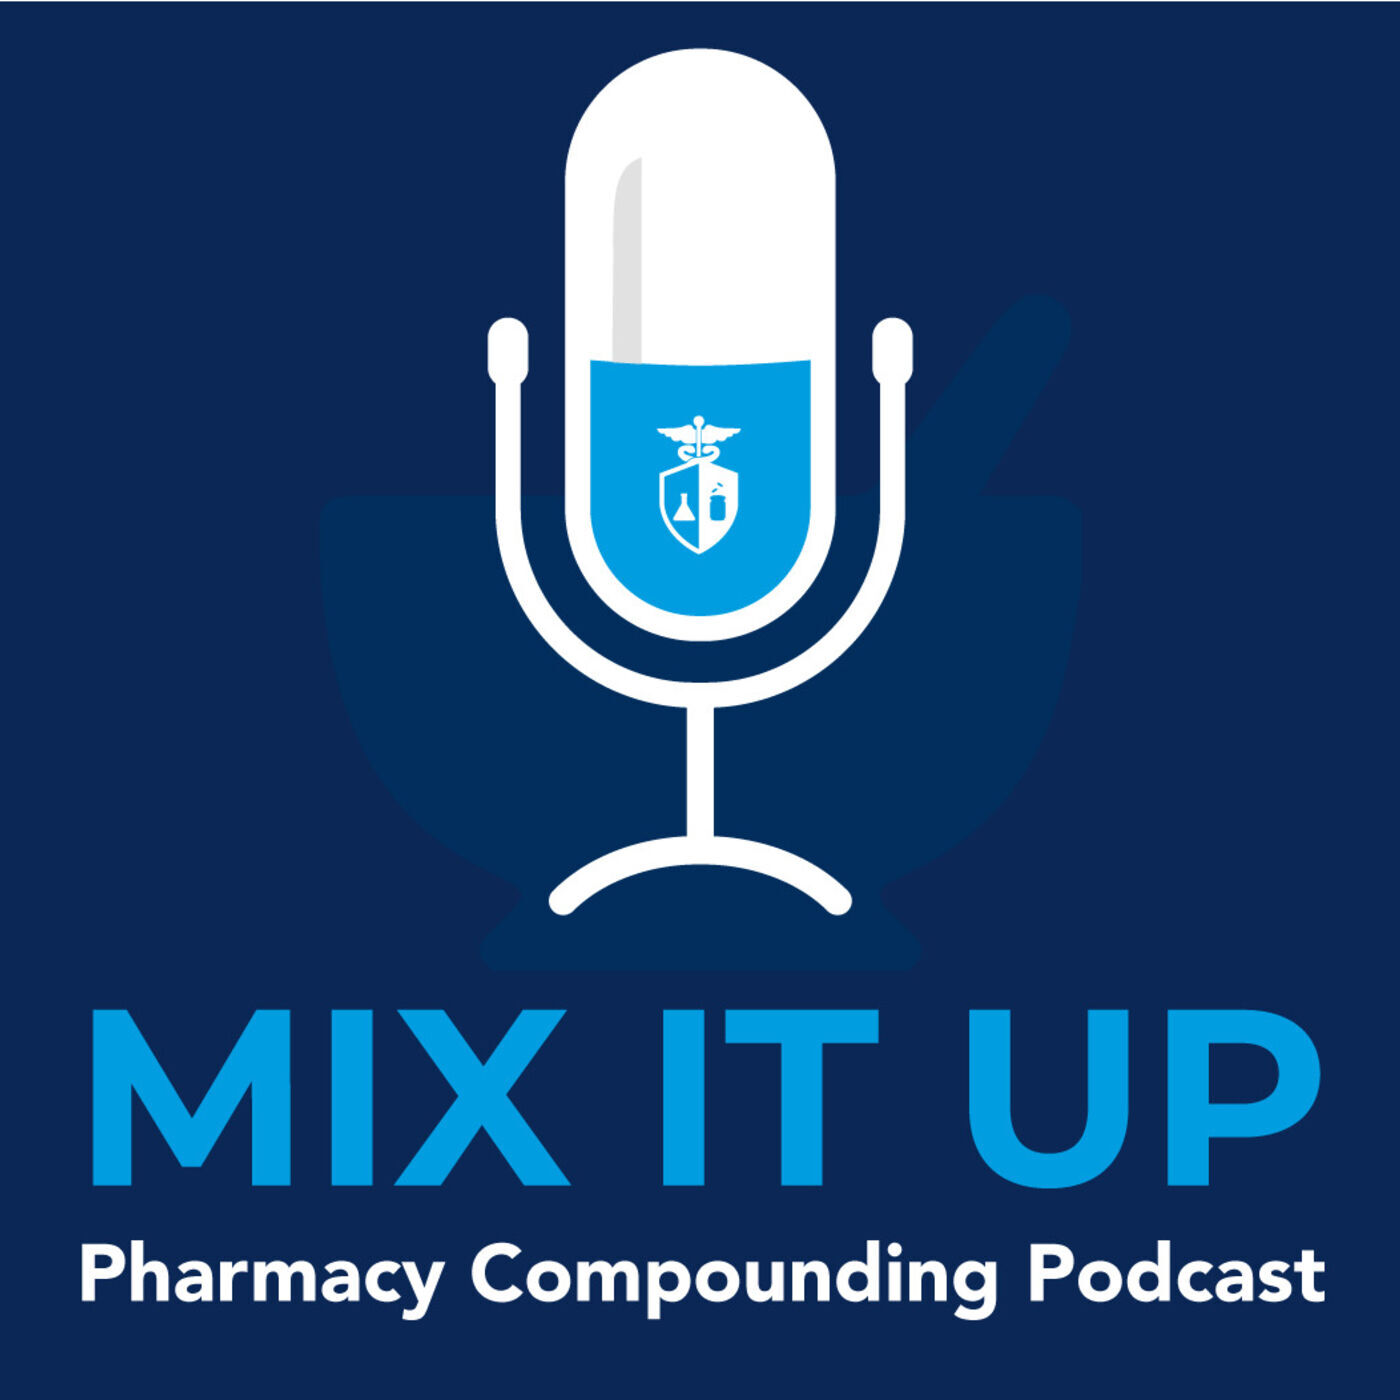 Episode 2.4 - Allergy Immunotherapy: Sublingual Immunotherapy, Pt. 3